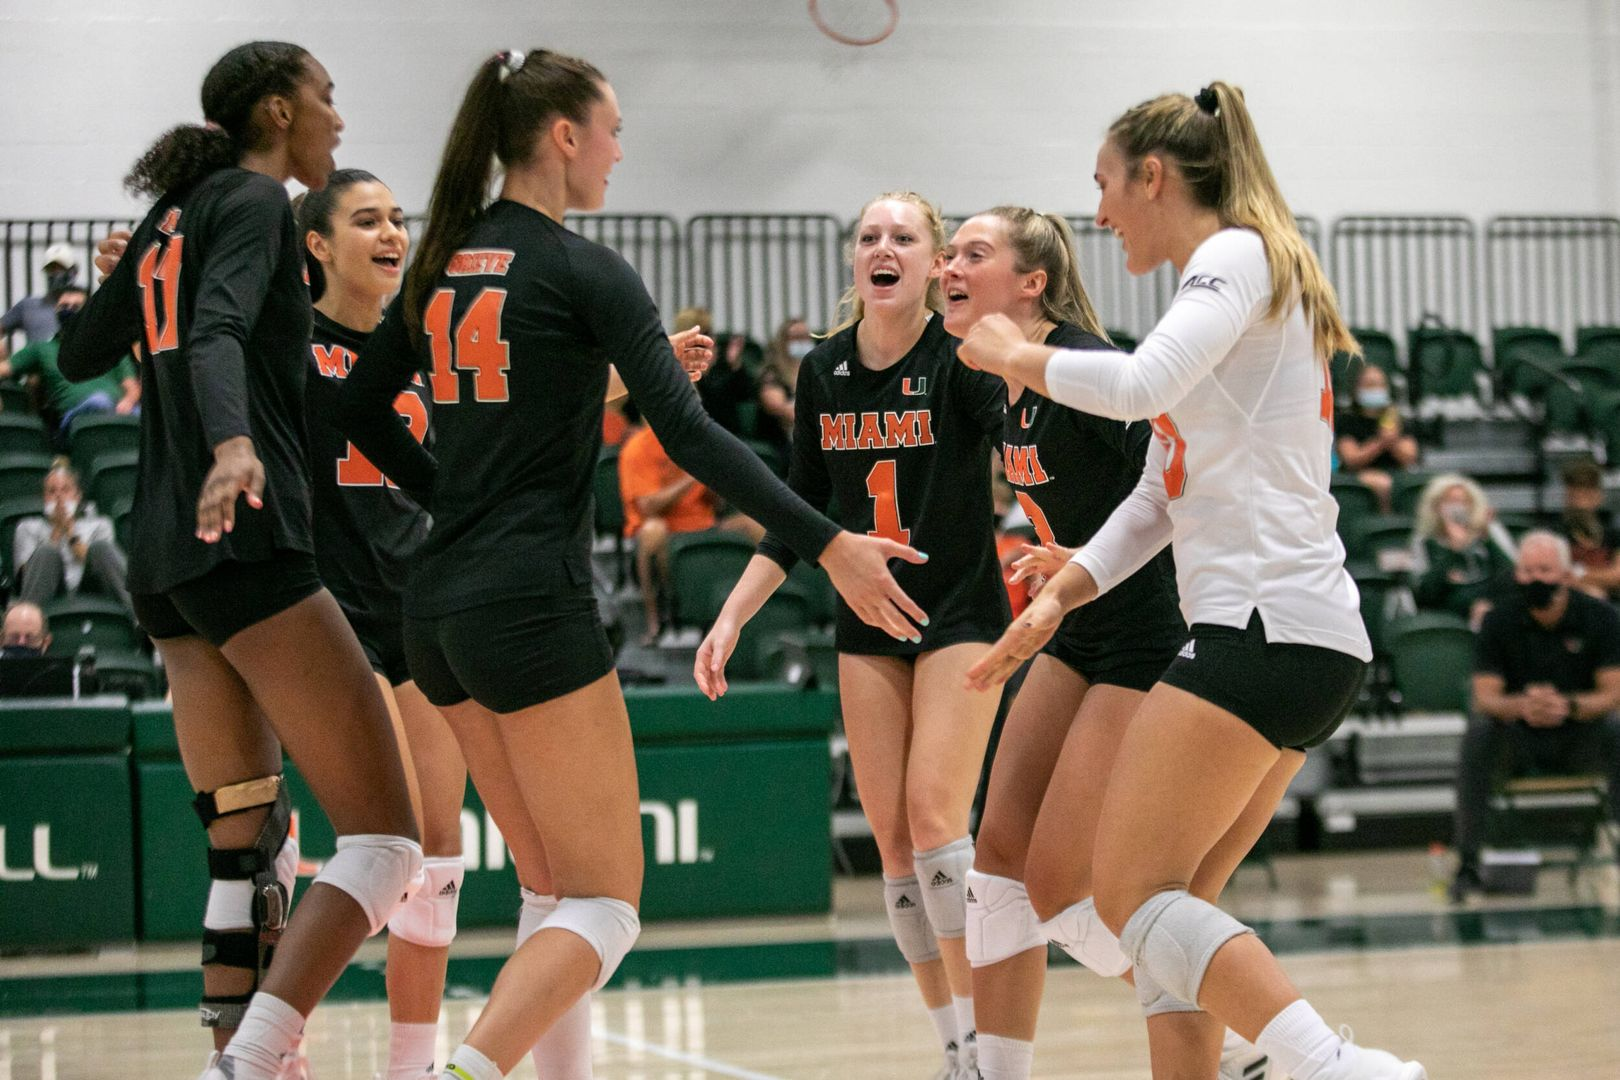 Canes Display Depth in Exhibition Match